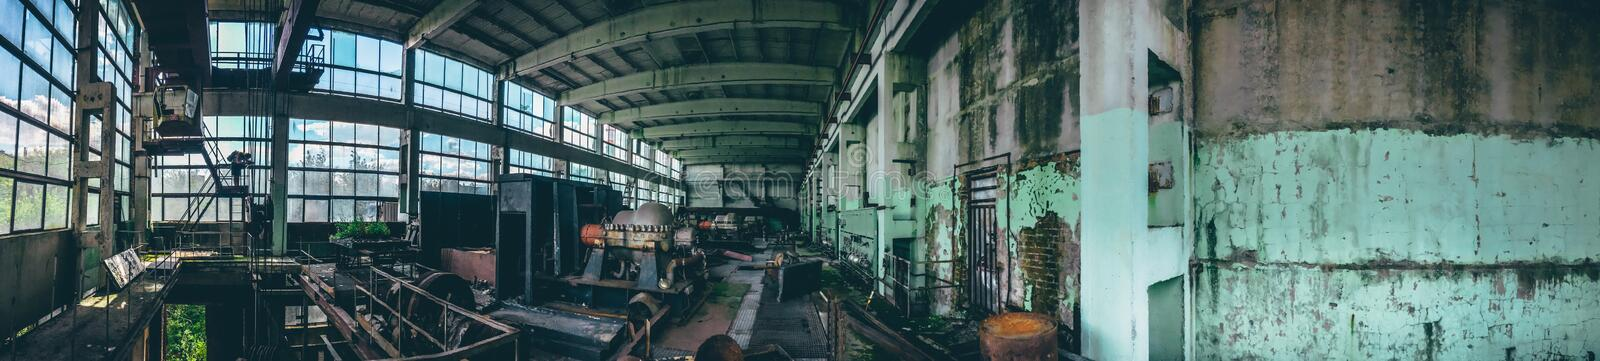 Panoramic shot of abandoned industrial factory in Efremov, Russia. Panorama of a large workshop with old and rusted equipment royalty free stock photos